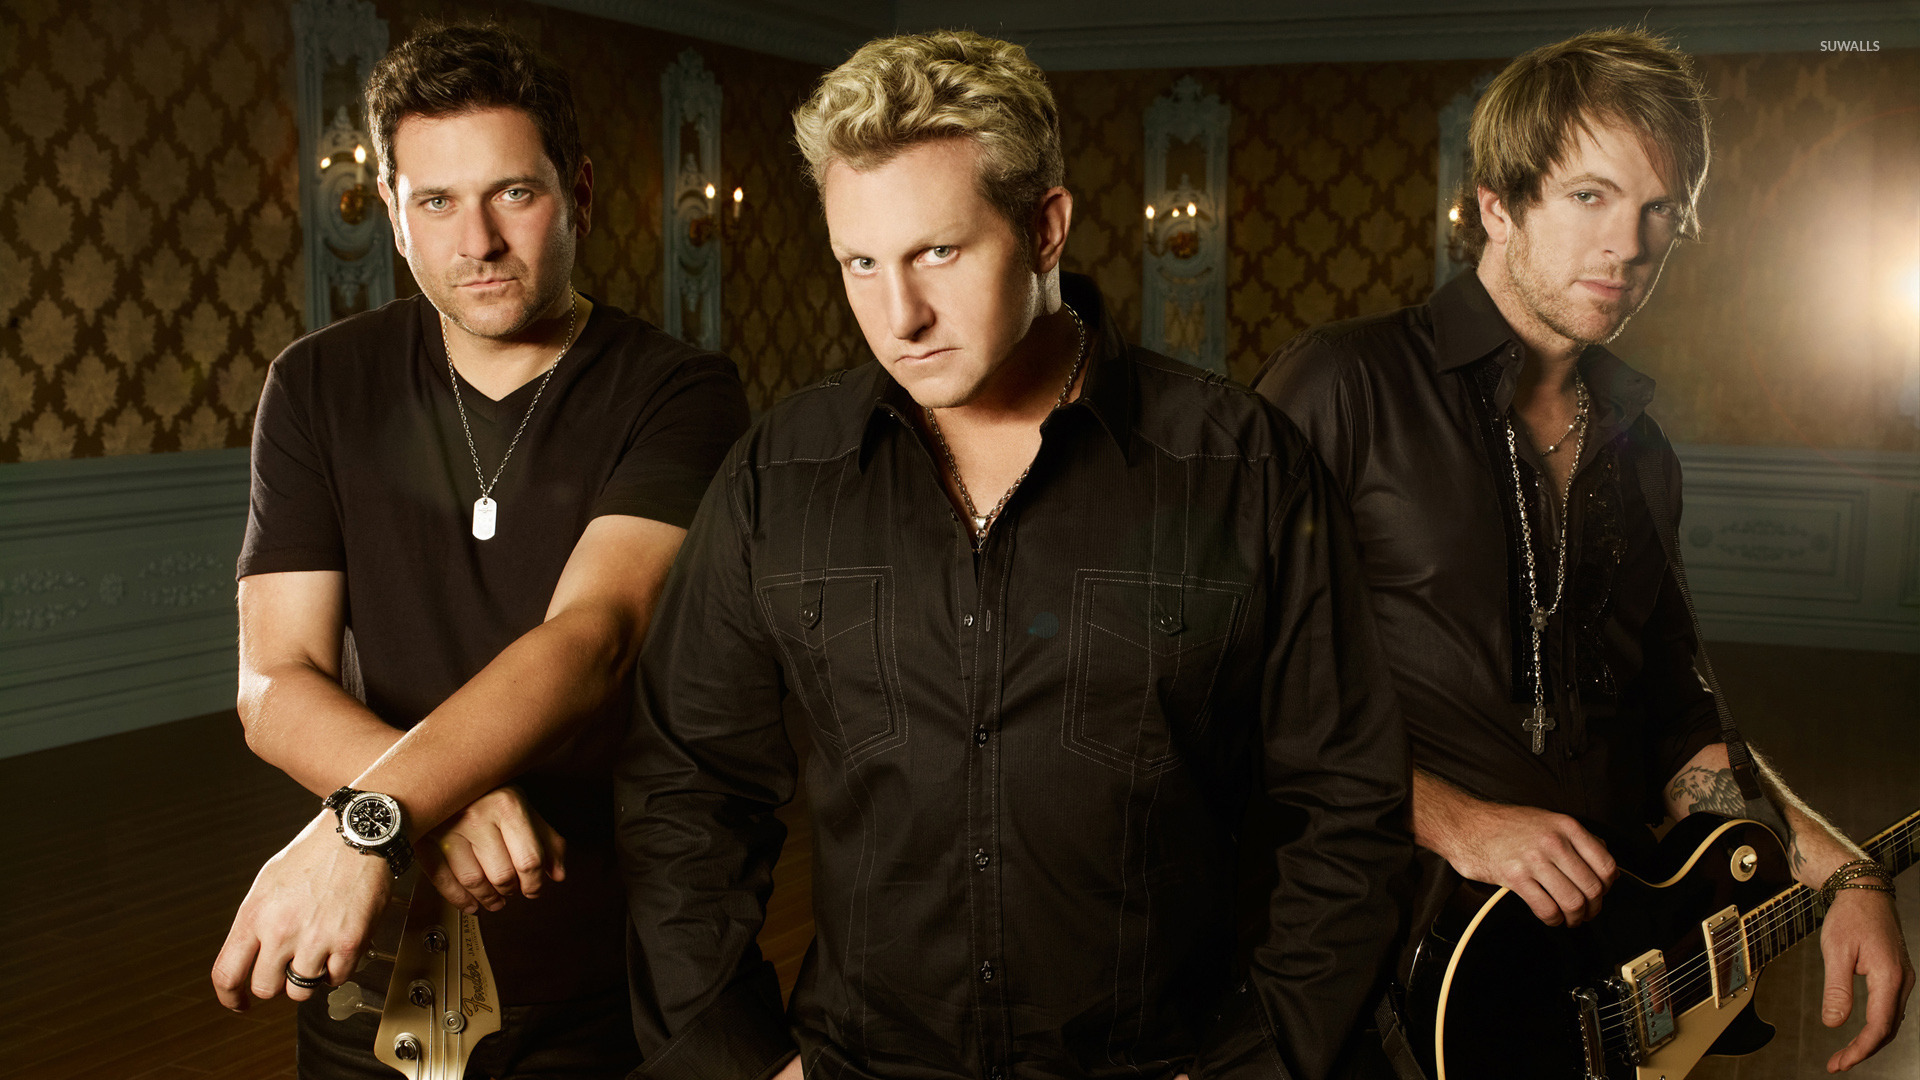 Guitar Hd Wallpapers With Quotes Rascal Flatts 2 Wallpaper Music Wallpapers 29248